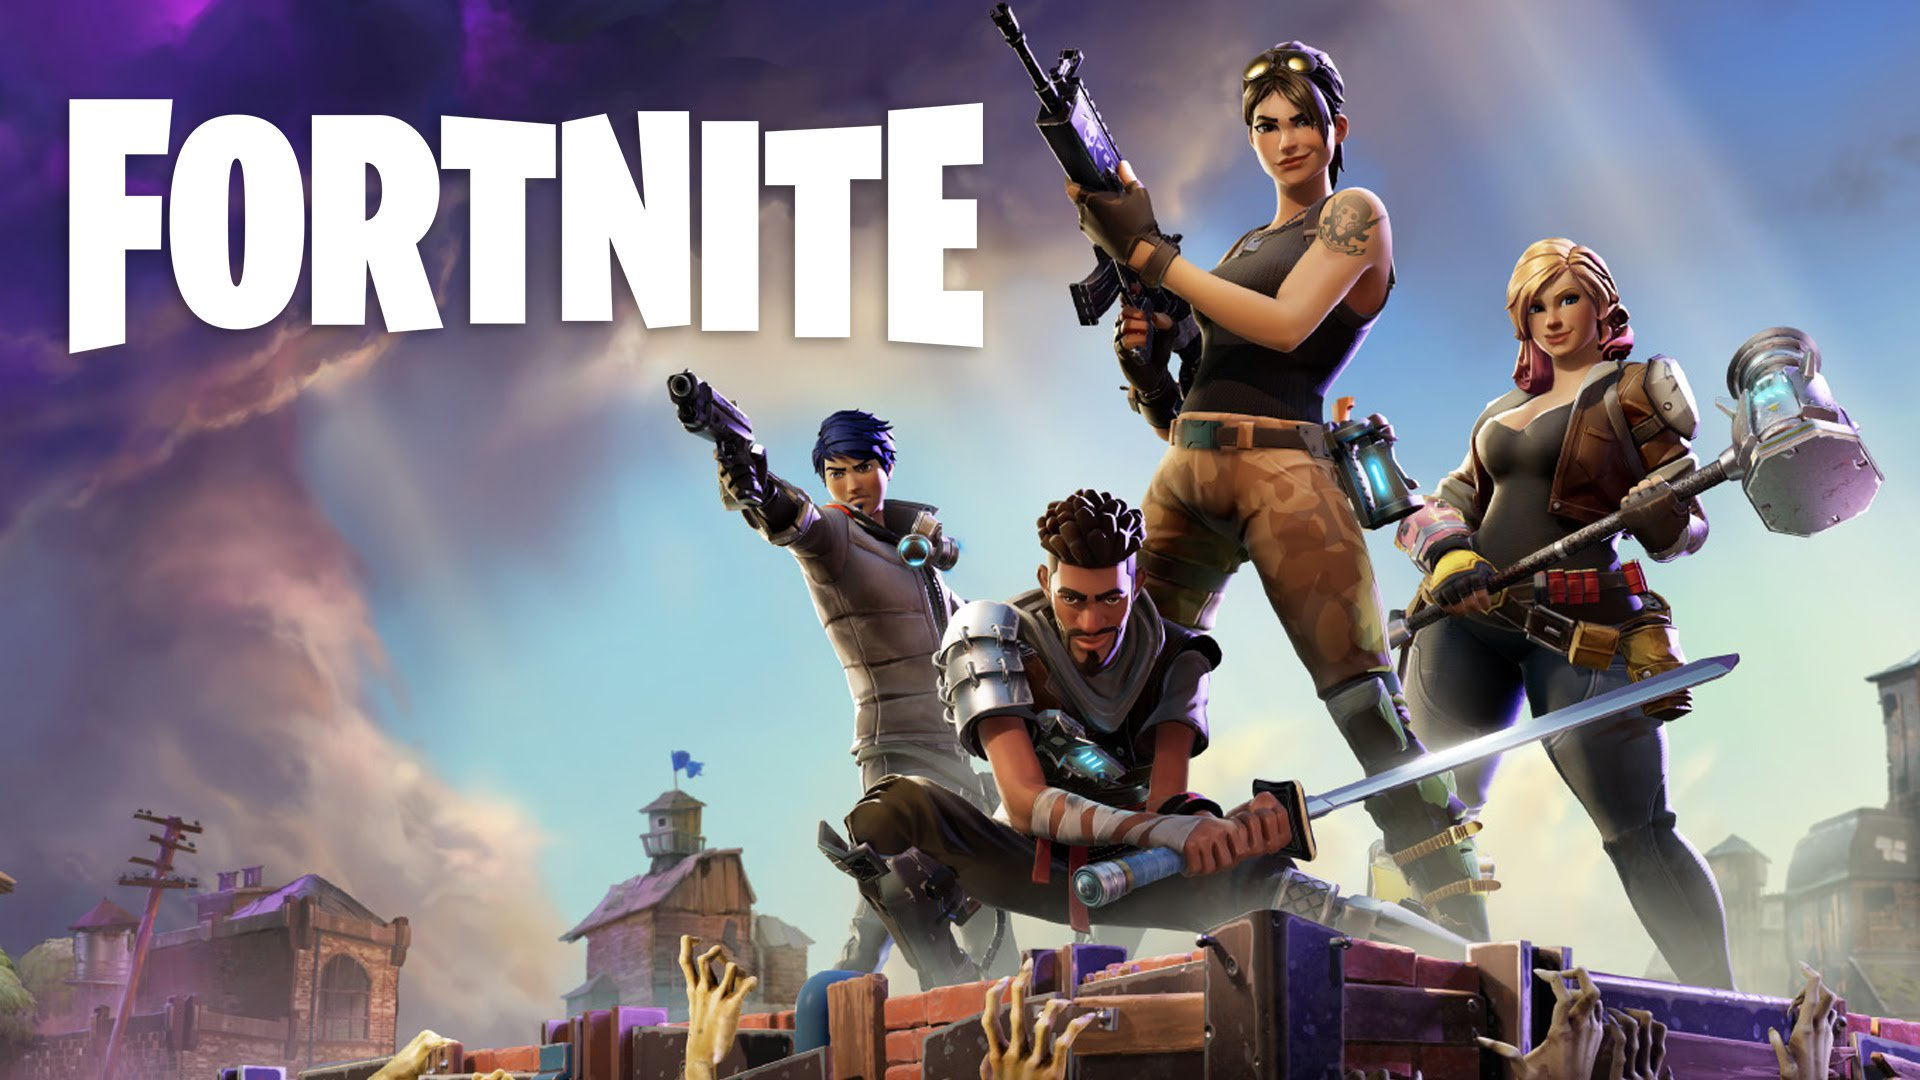 fortnite video game desktop wallpaper 62261